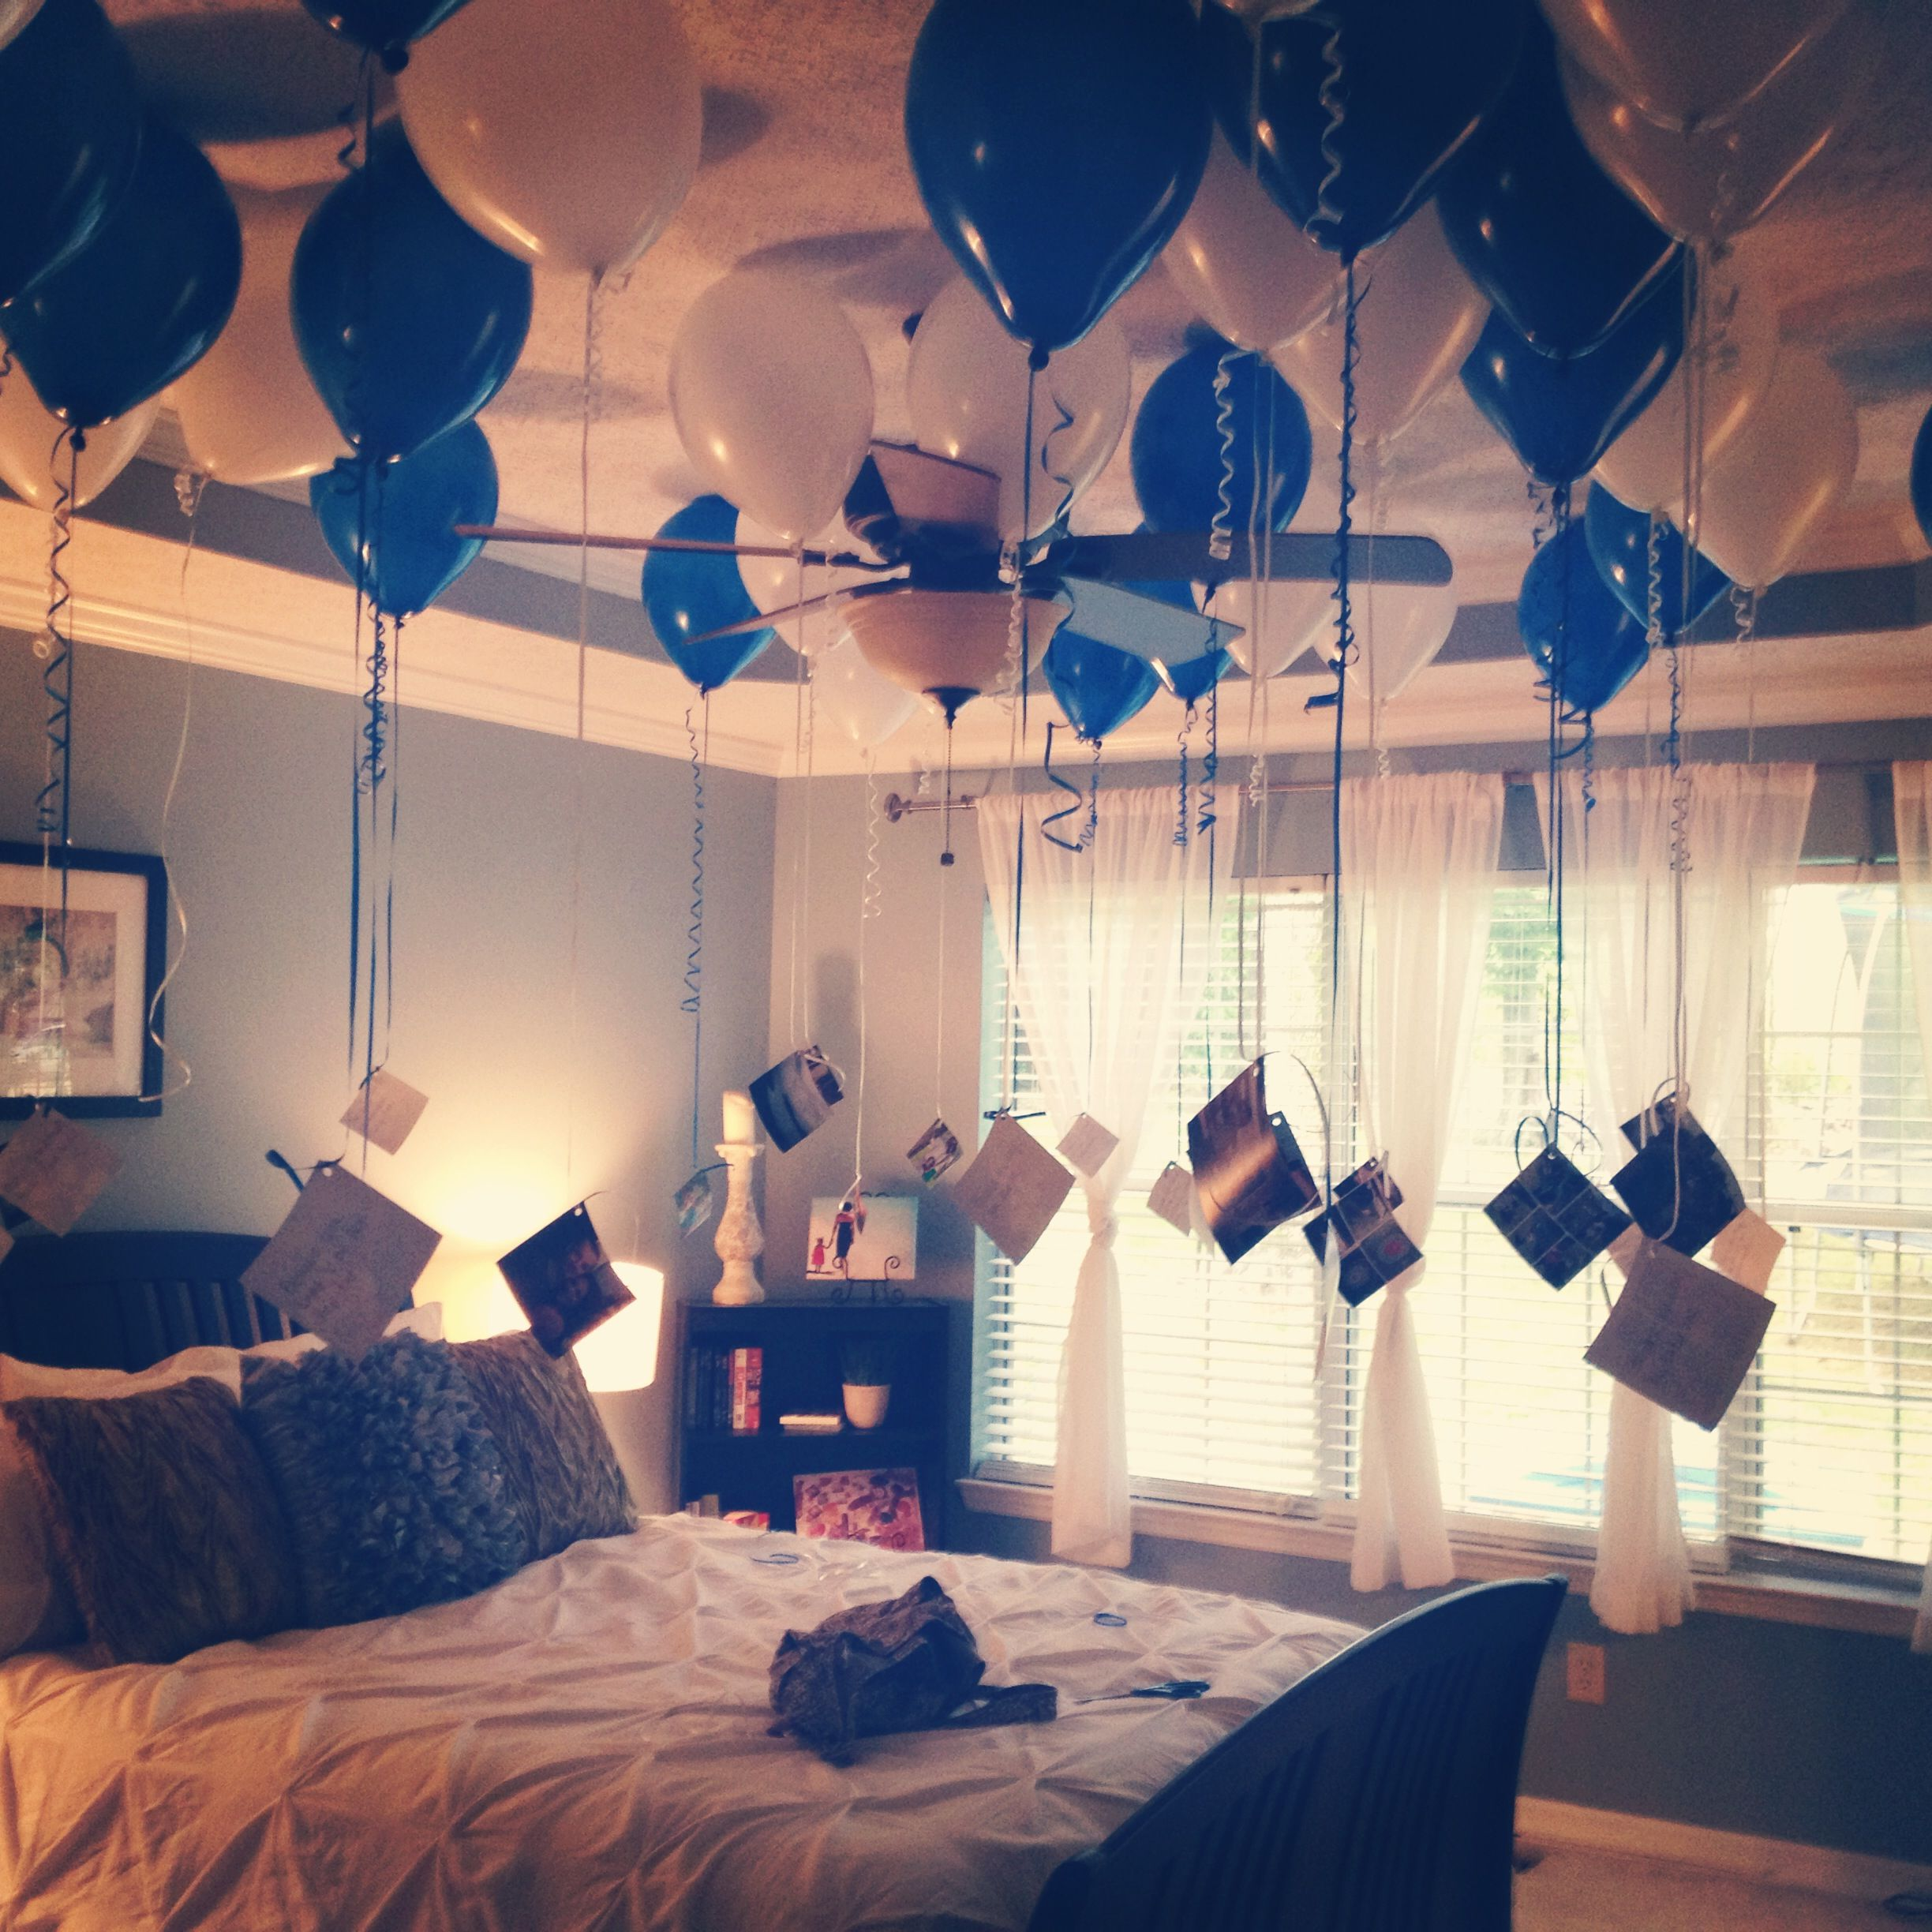 Boyfriends 35th Birthday 35 Balloons 35 Pictures With 35 Reasons